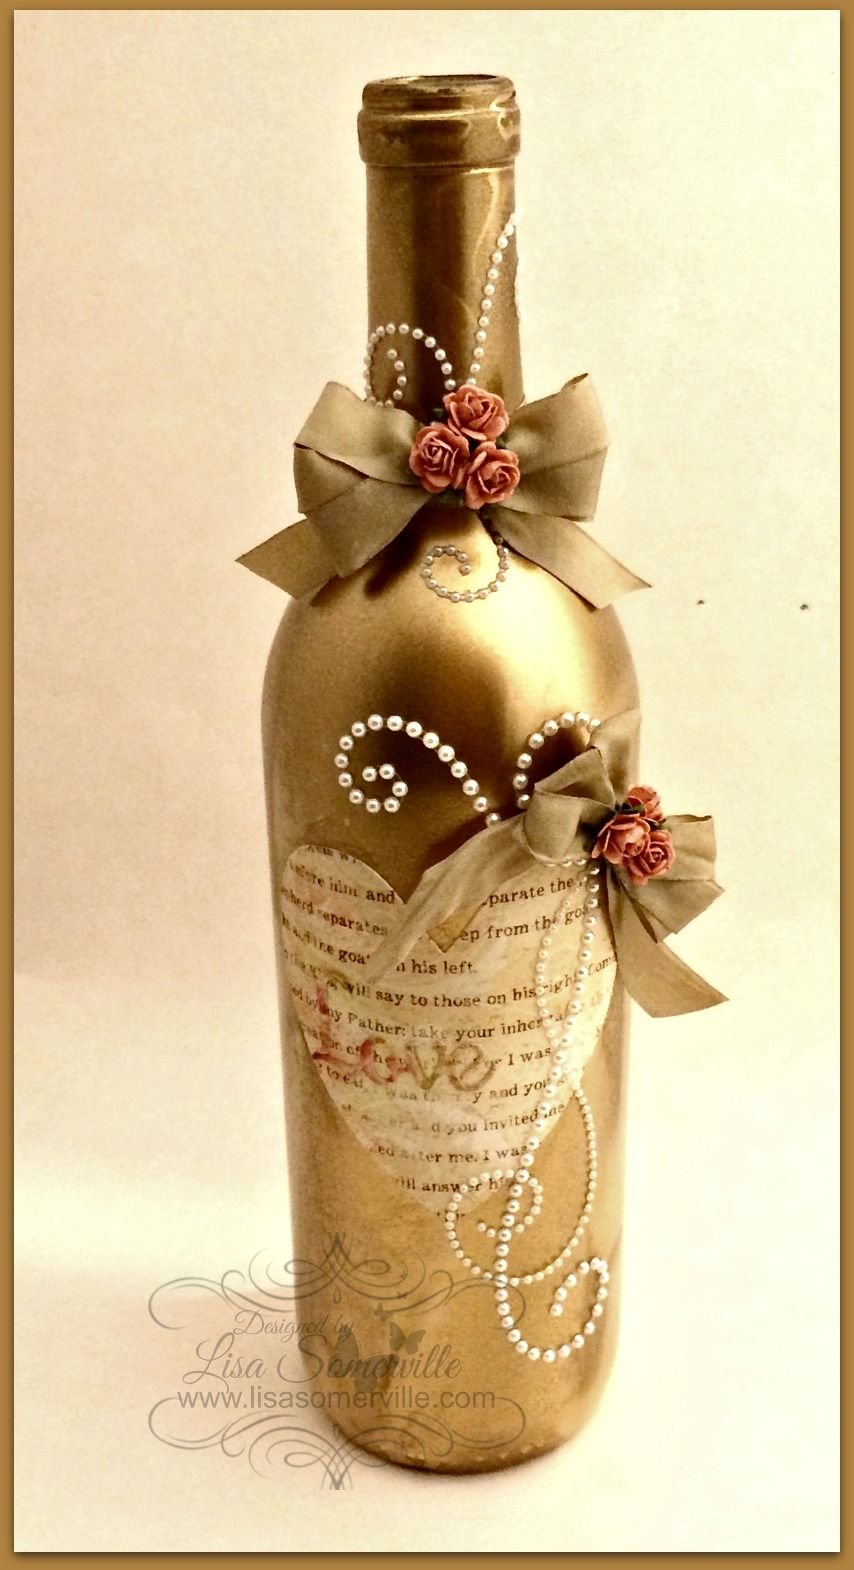 Wine bottle corks crafts - Find This Pin And More On Wine Bottle Cork Crafts